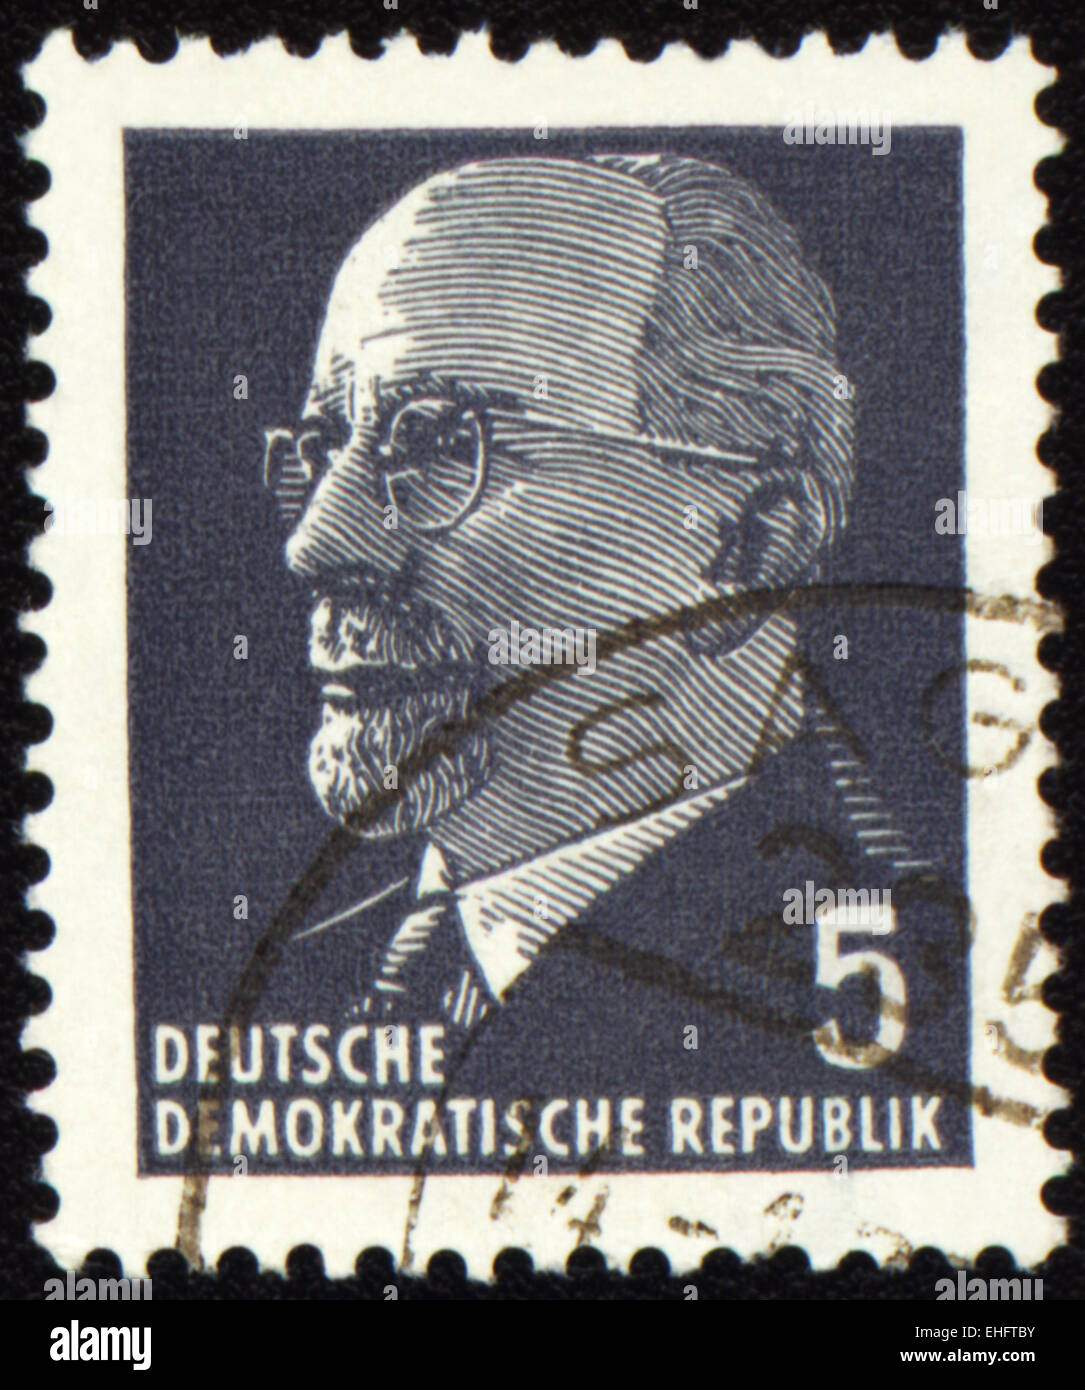 GDR - CIRCA 1971: A stamp printed in GDR (East Germany) shows Chairman Walter Ulbricht portrait - Stock Image